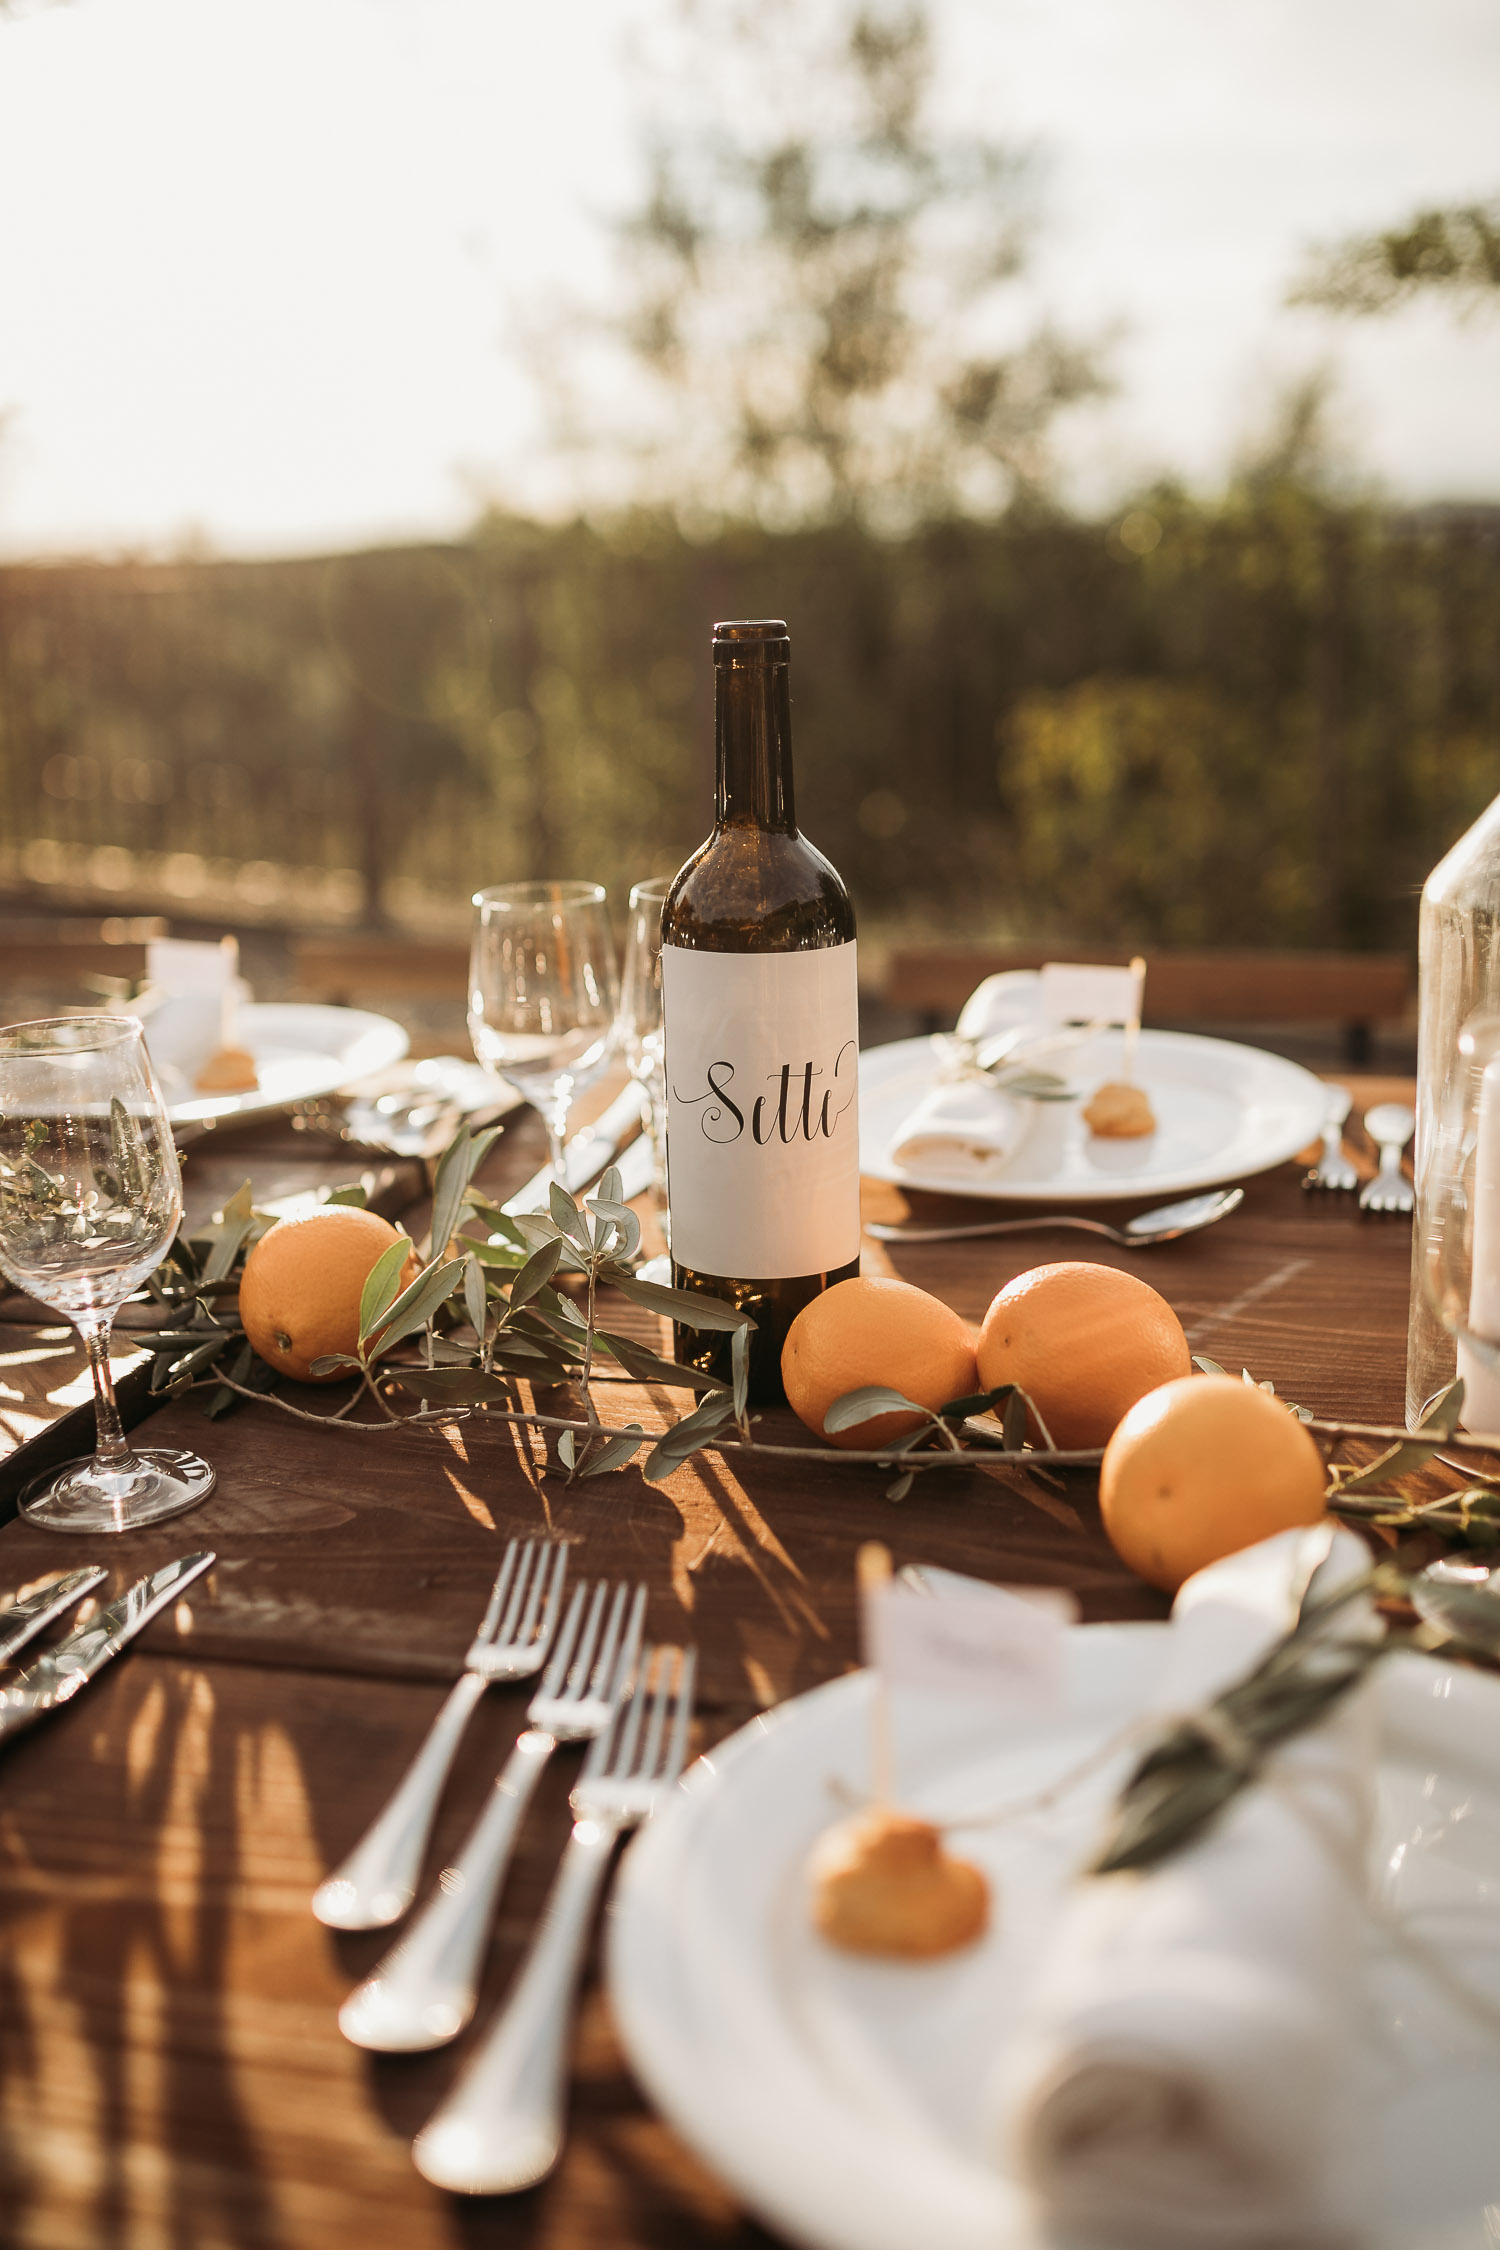 Wedding rustic table decor with orange and olives